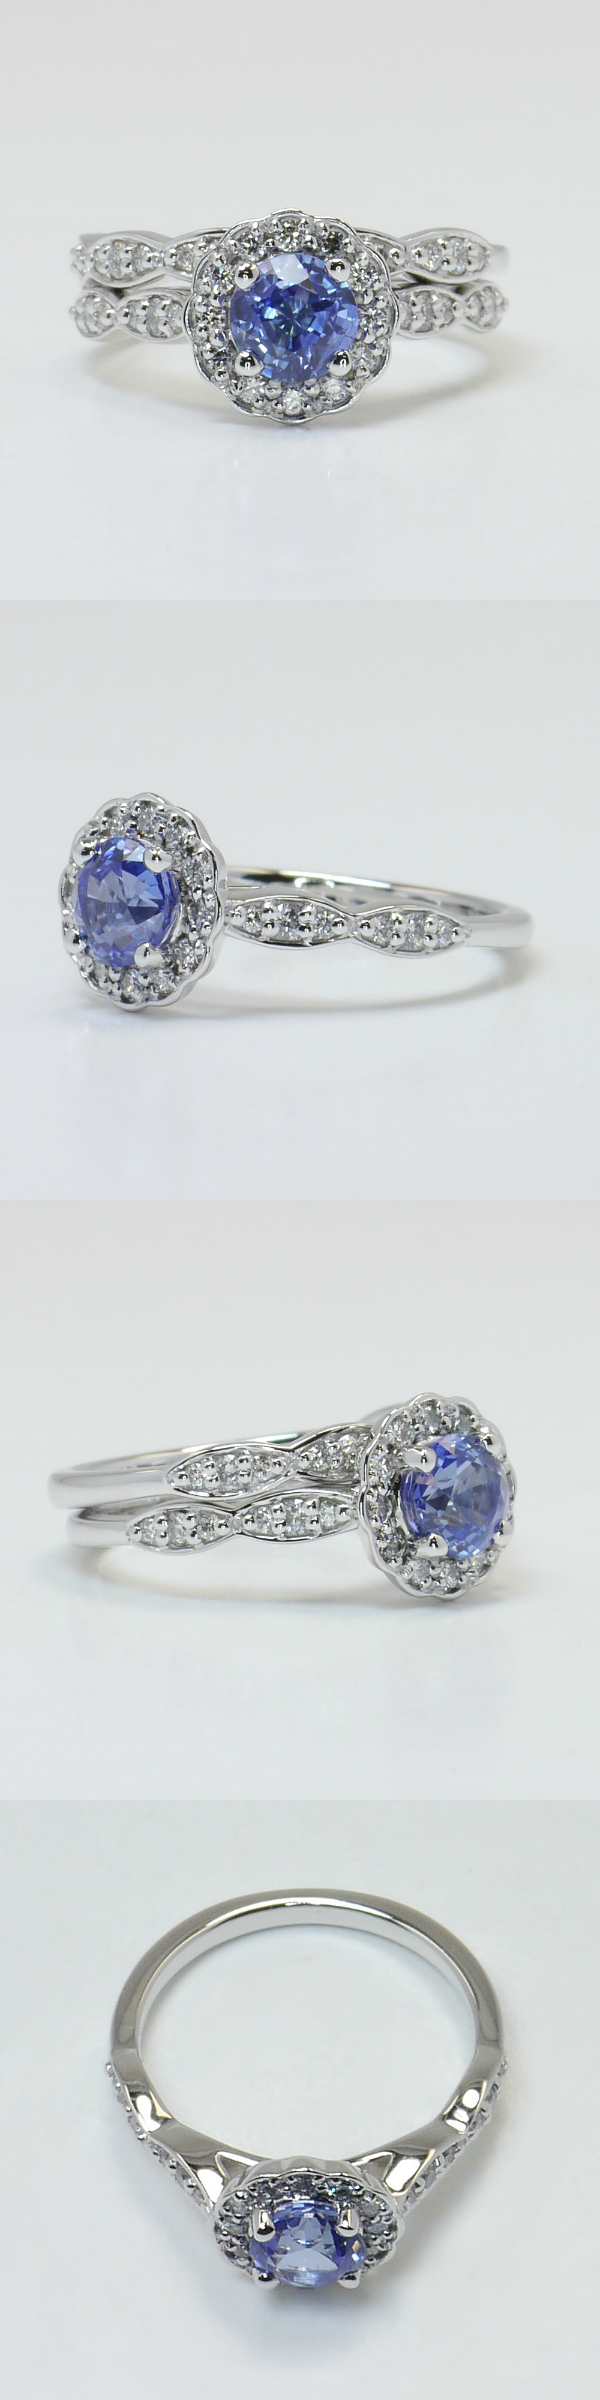 that blue society with cut this custommade cushion the cost in a than gemstones sapphire deep tanzanite diamond fine rarer international article ring permission ten rivals ct used of gem